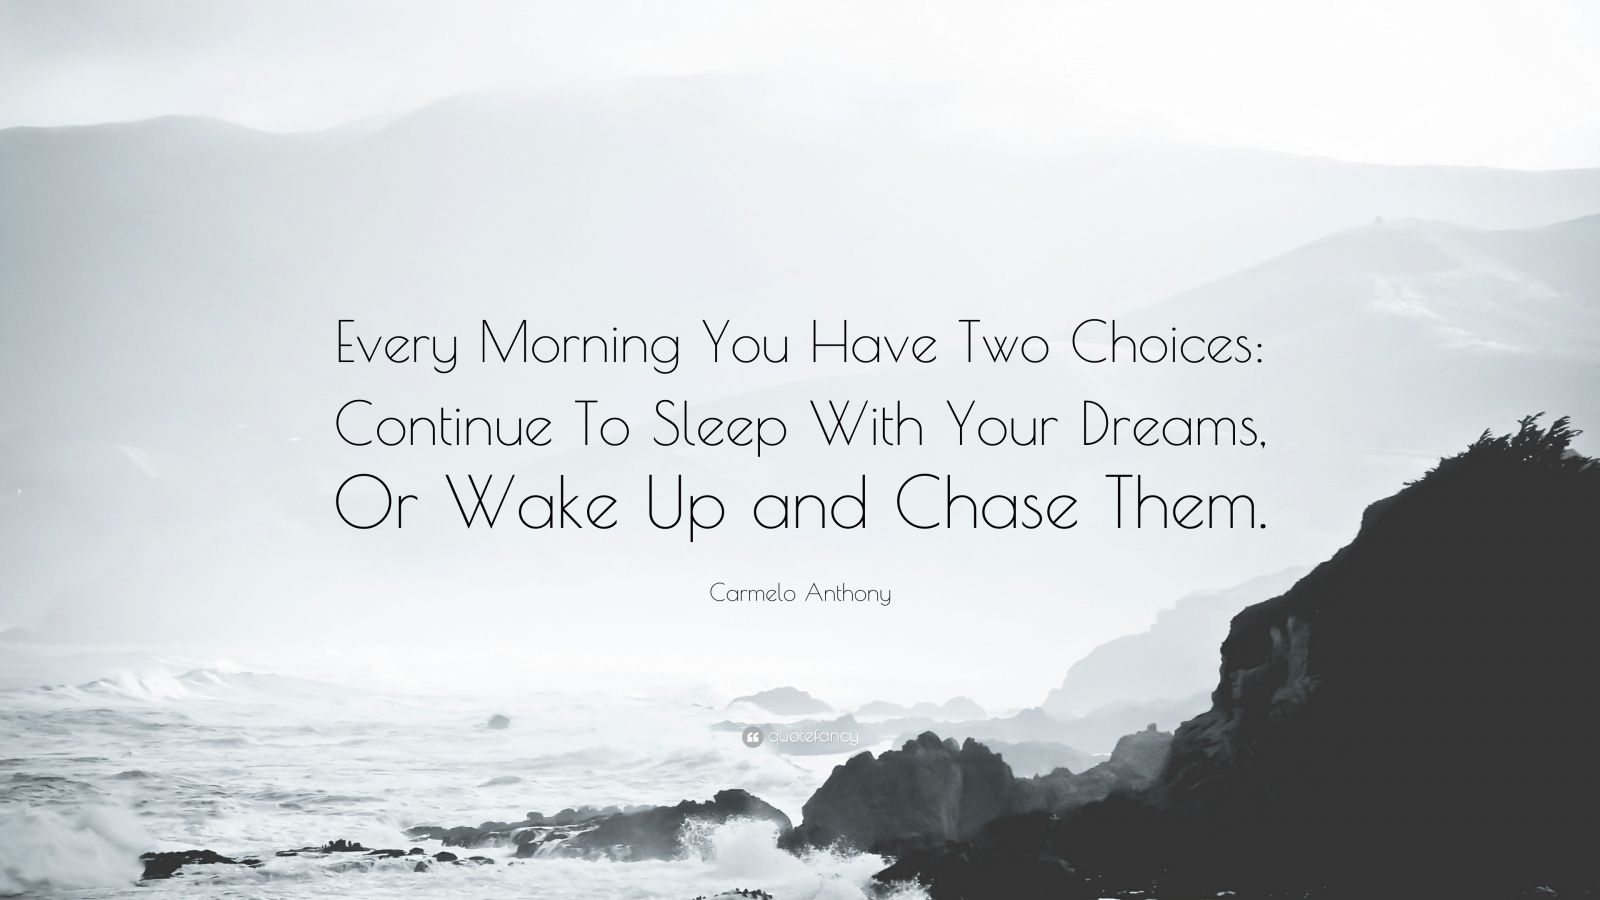 """Good Morning Quotes: """"Every Morning You Have Two Choices: Continue To Sleep With Your Dreams, Or Wake Up and Chase Them."""" — Carmelo Anthony"""